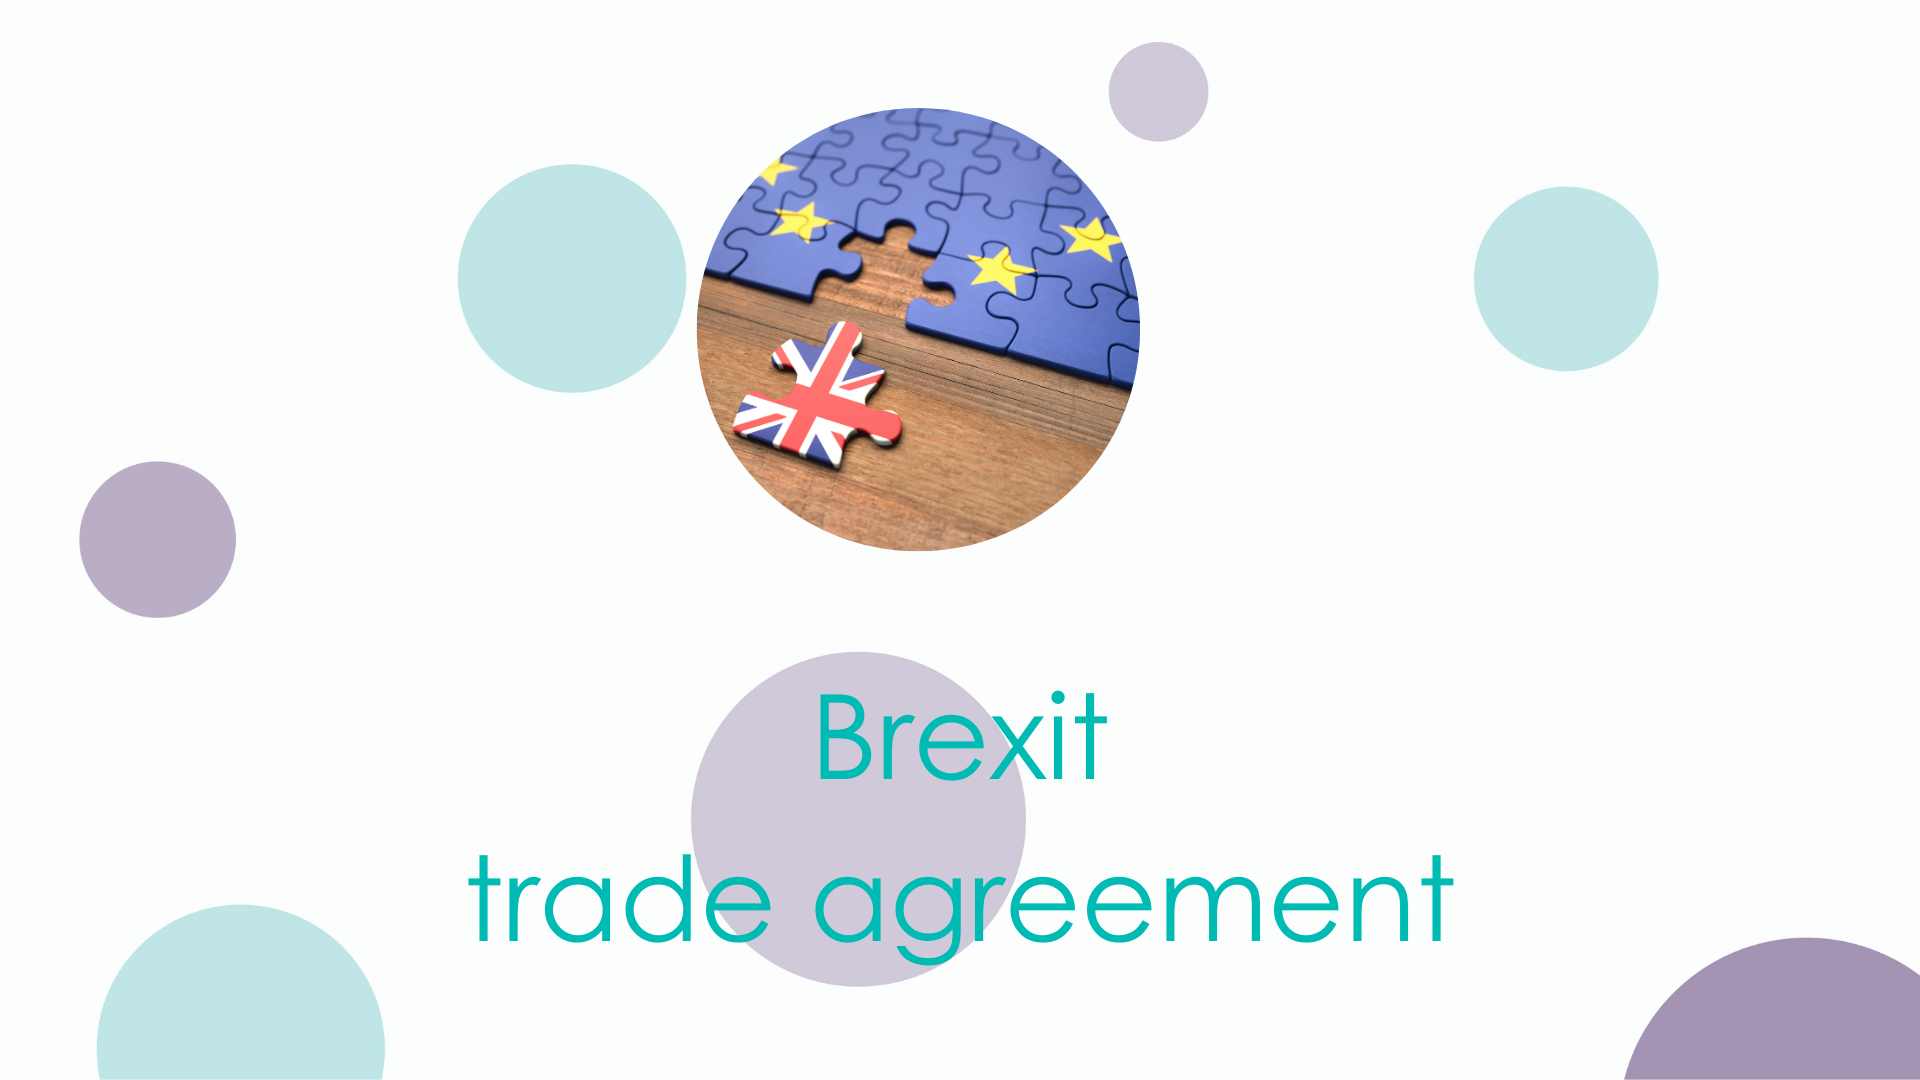 What you need to know about the Brexit trade agreement